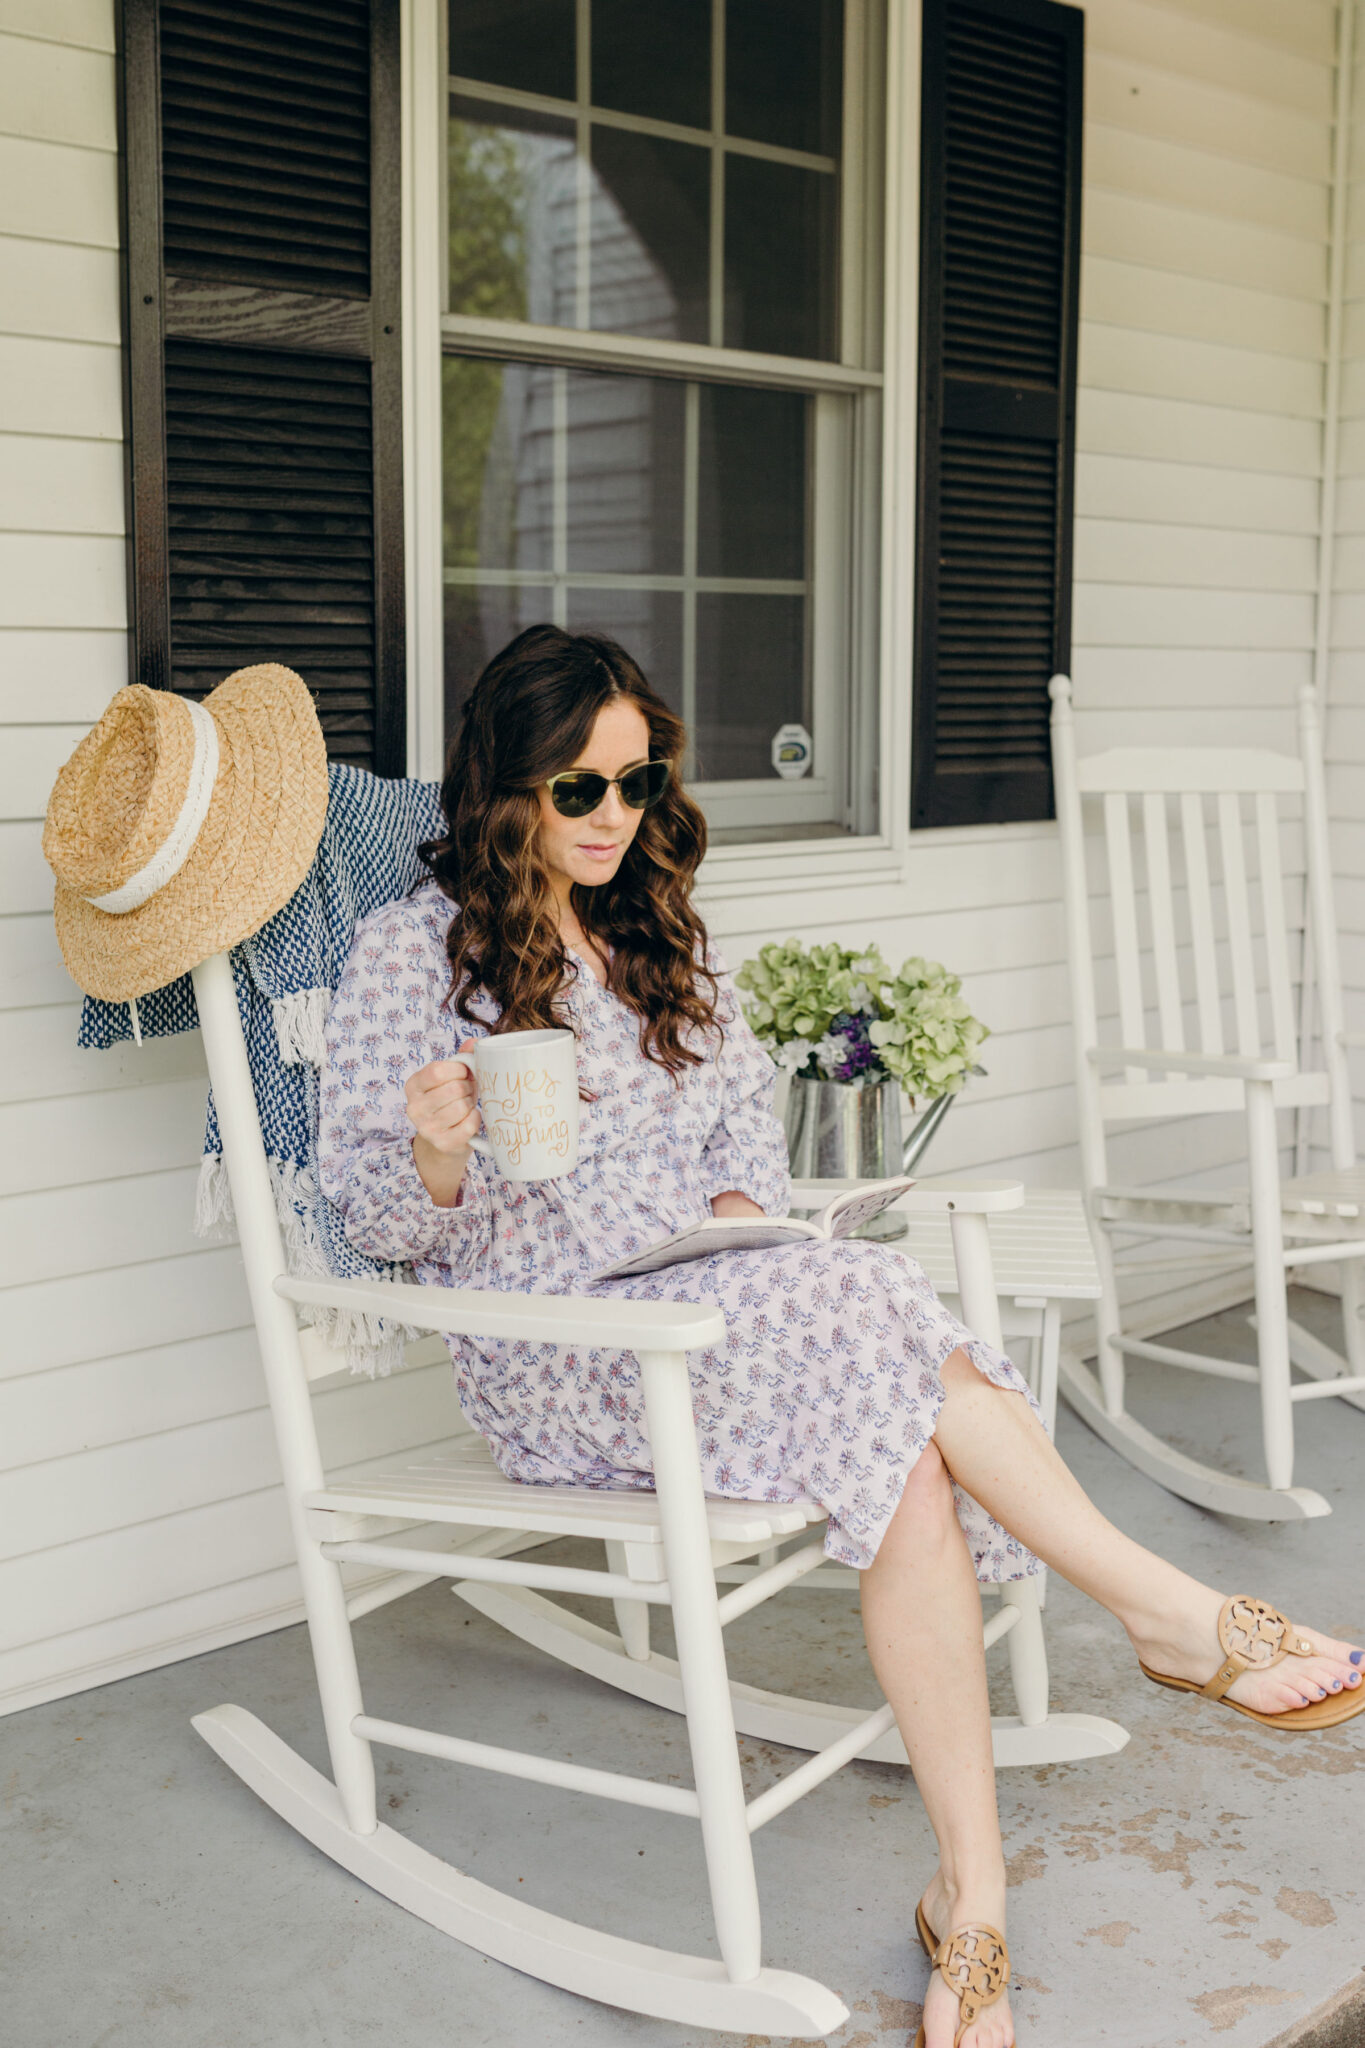 Mom with cup of coffee in rocking chair reading a book on porch